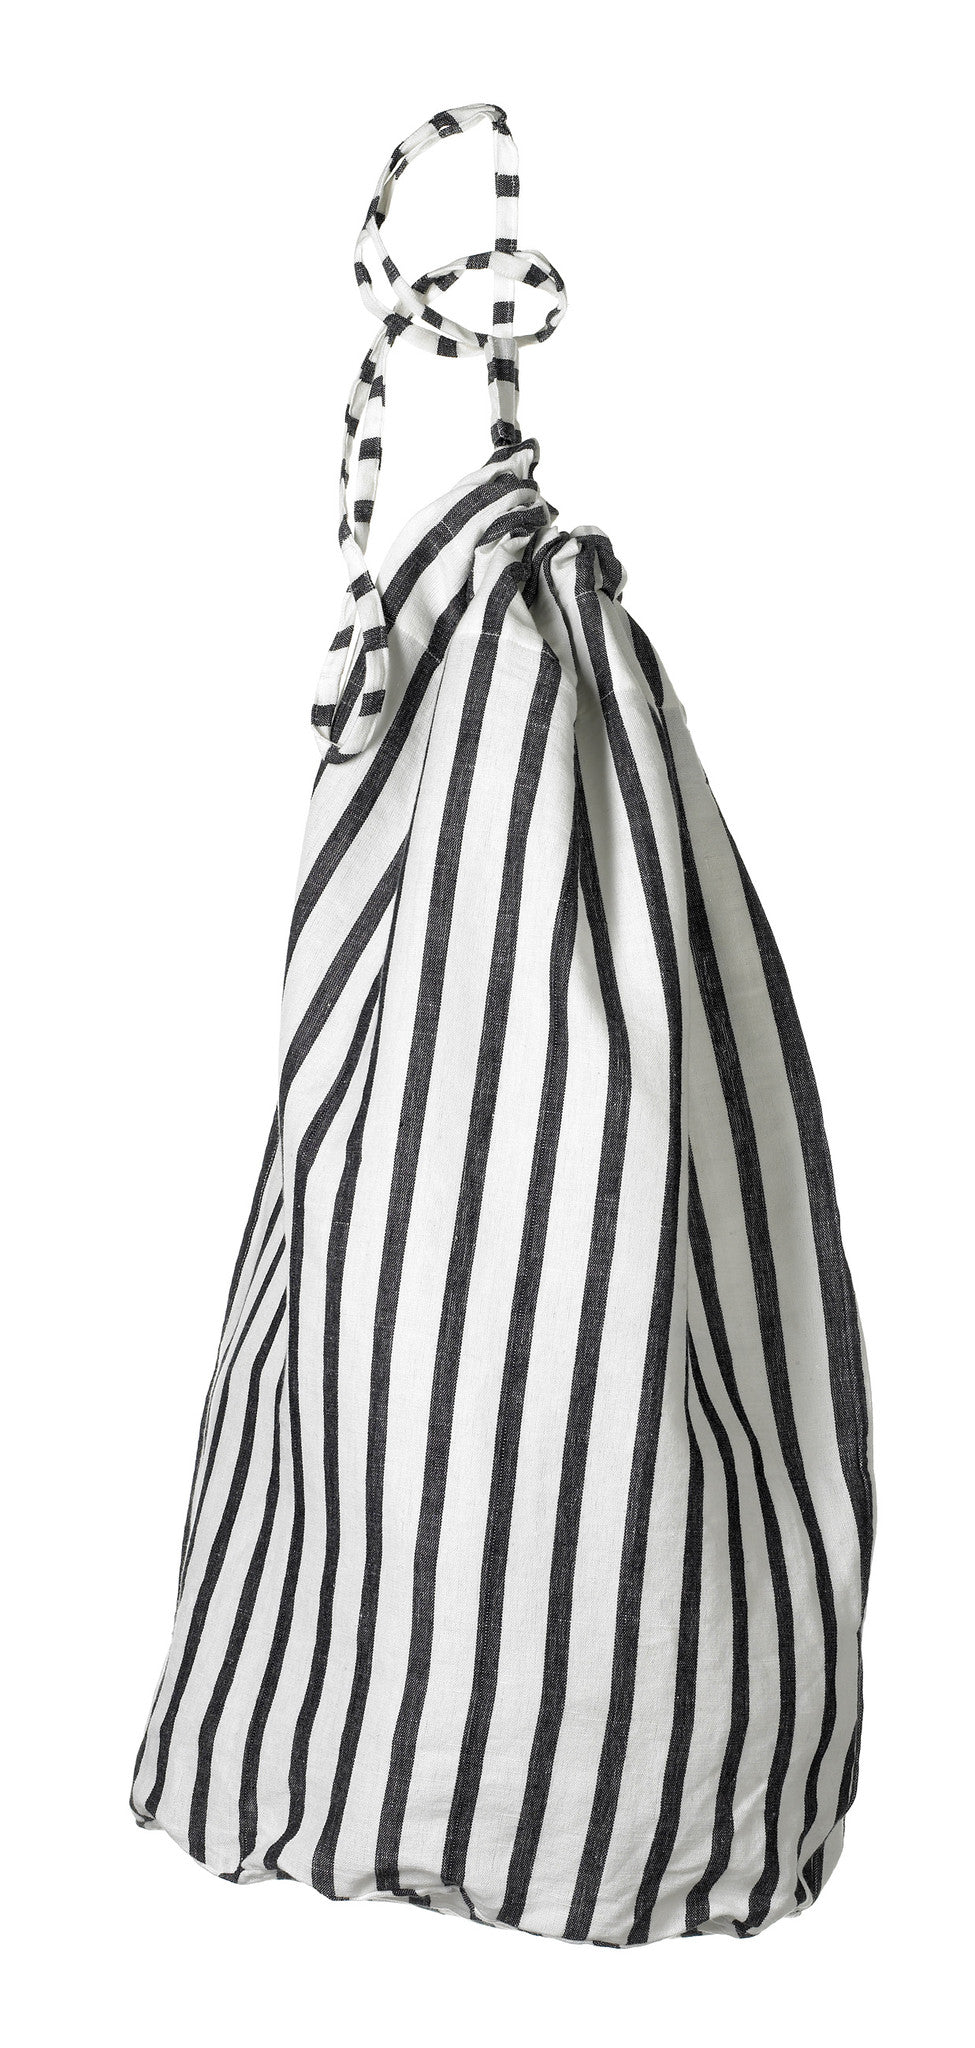 Autumn Ticking Stripe Cotton Linen Laundry & Storage Bag in Black